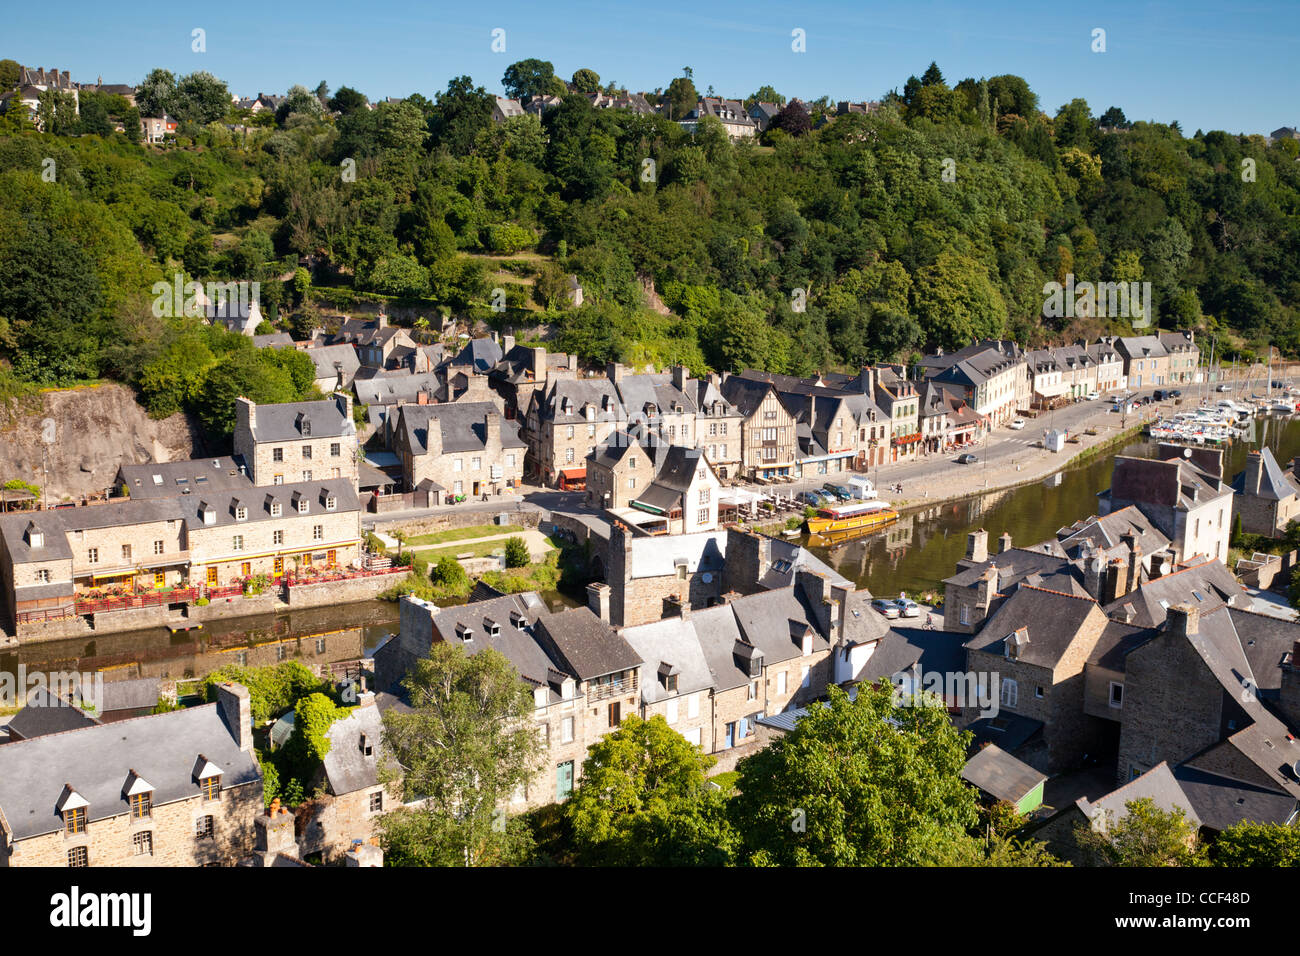 A view over the rooftops and River Rance at the medieval port of Dinan, Brittany, France. - Stock Image